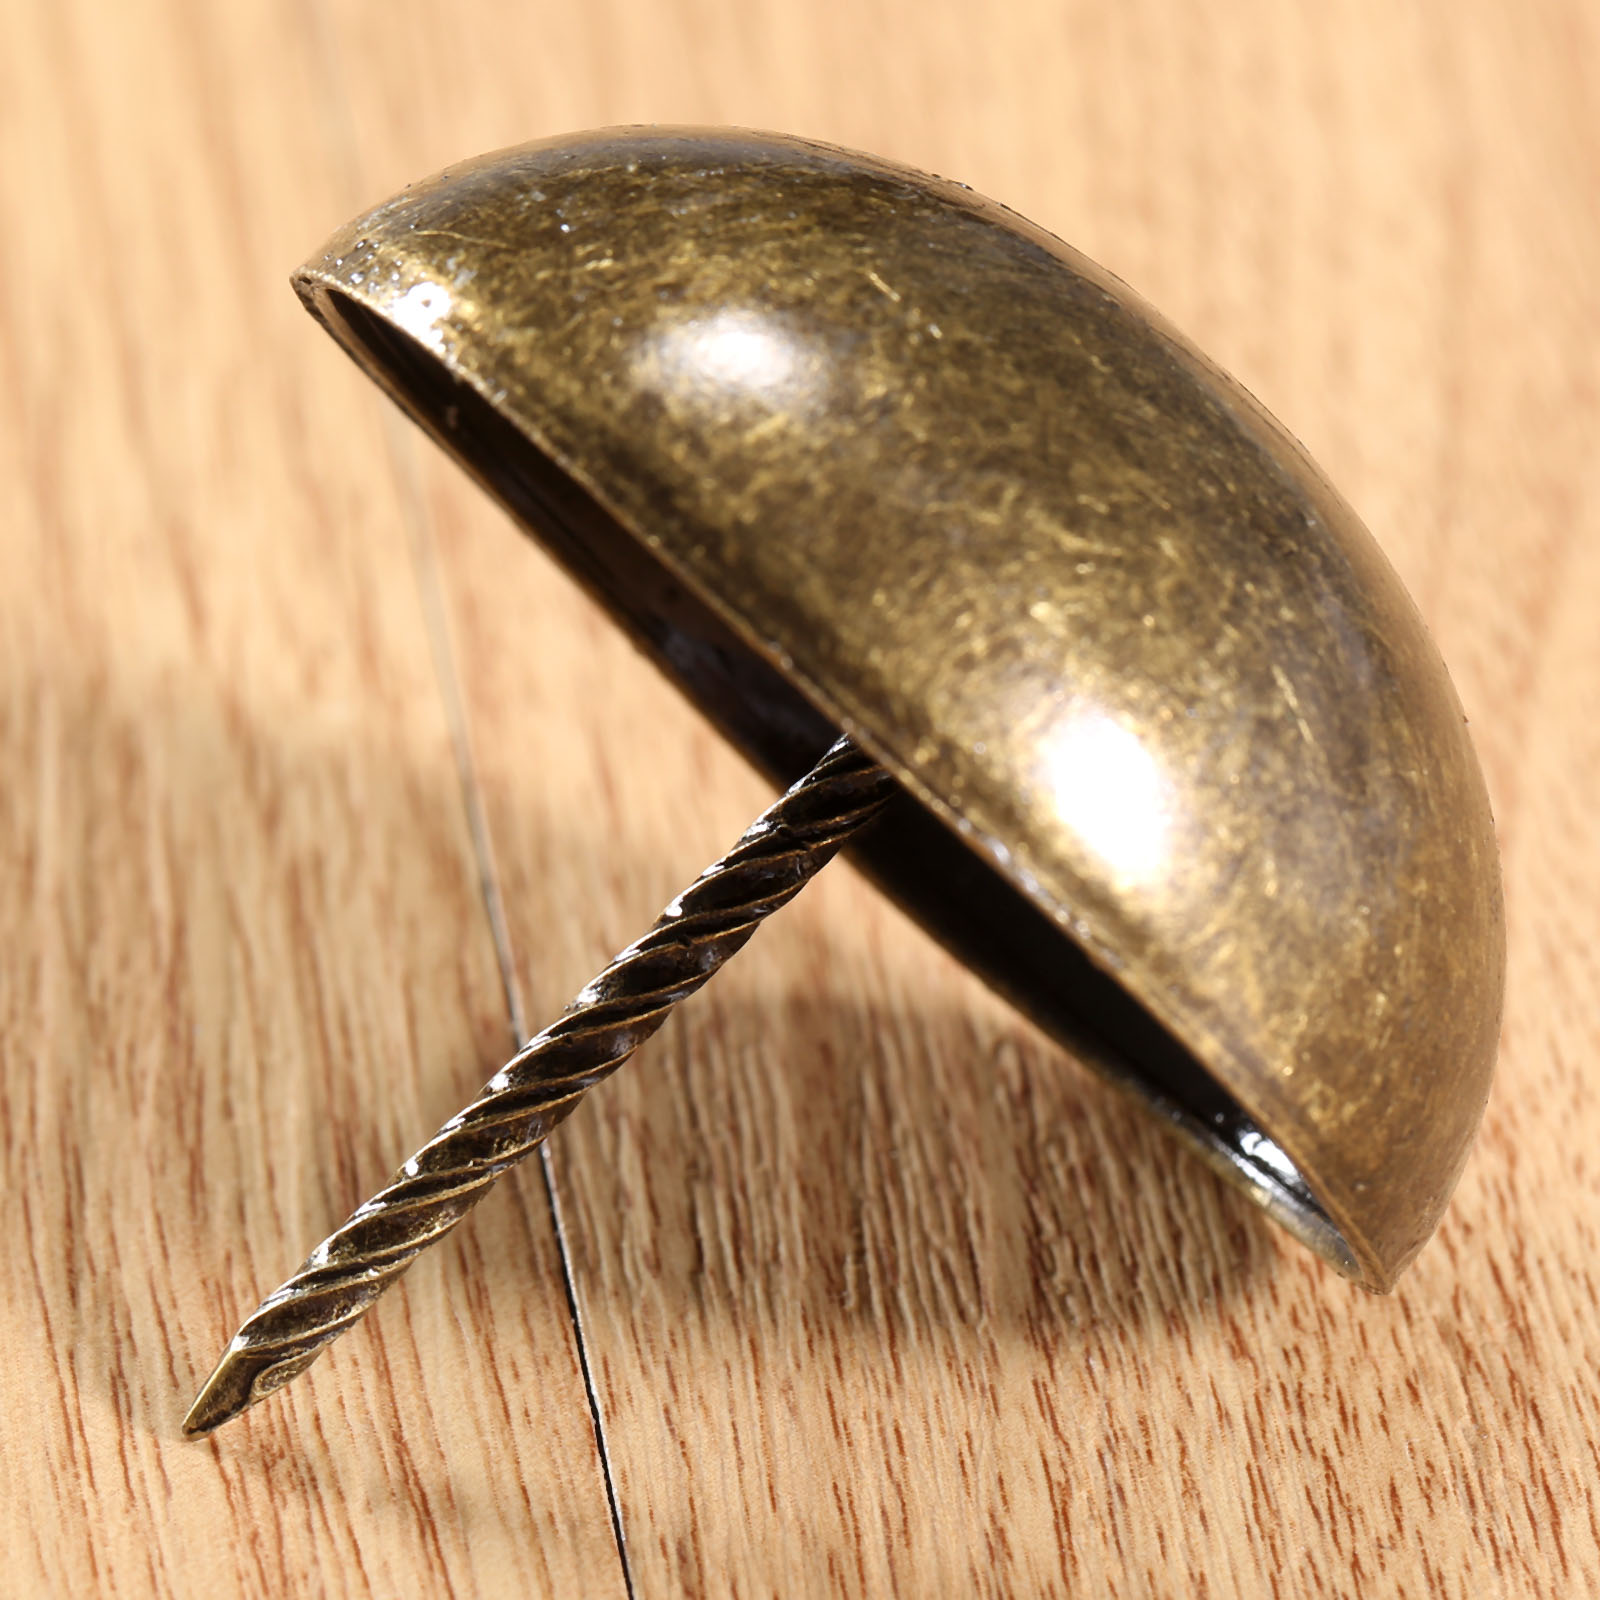 decorative nails for furniture. Decorative Nails For Furniture. 1Pc Antique Bronze Upholstery Nail Tacks Stud Wooden Box Furniture S